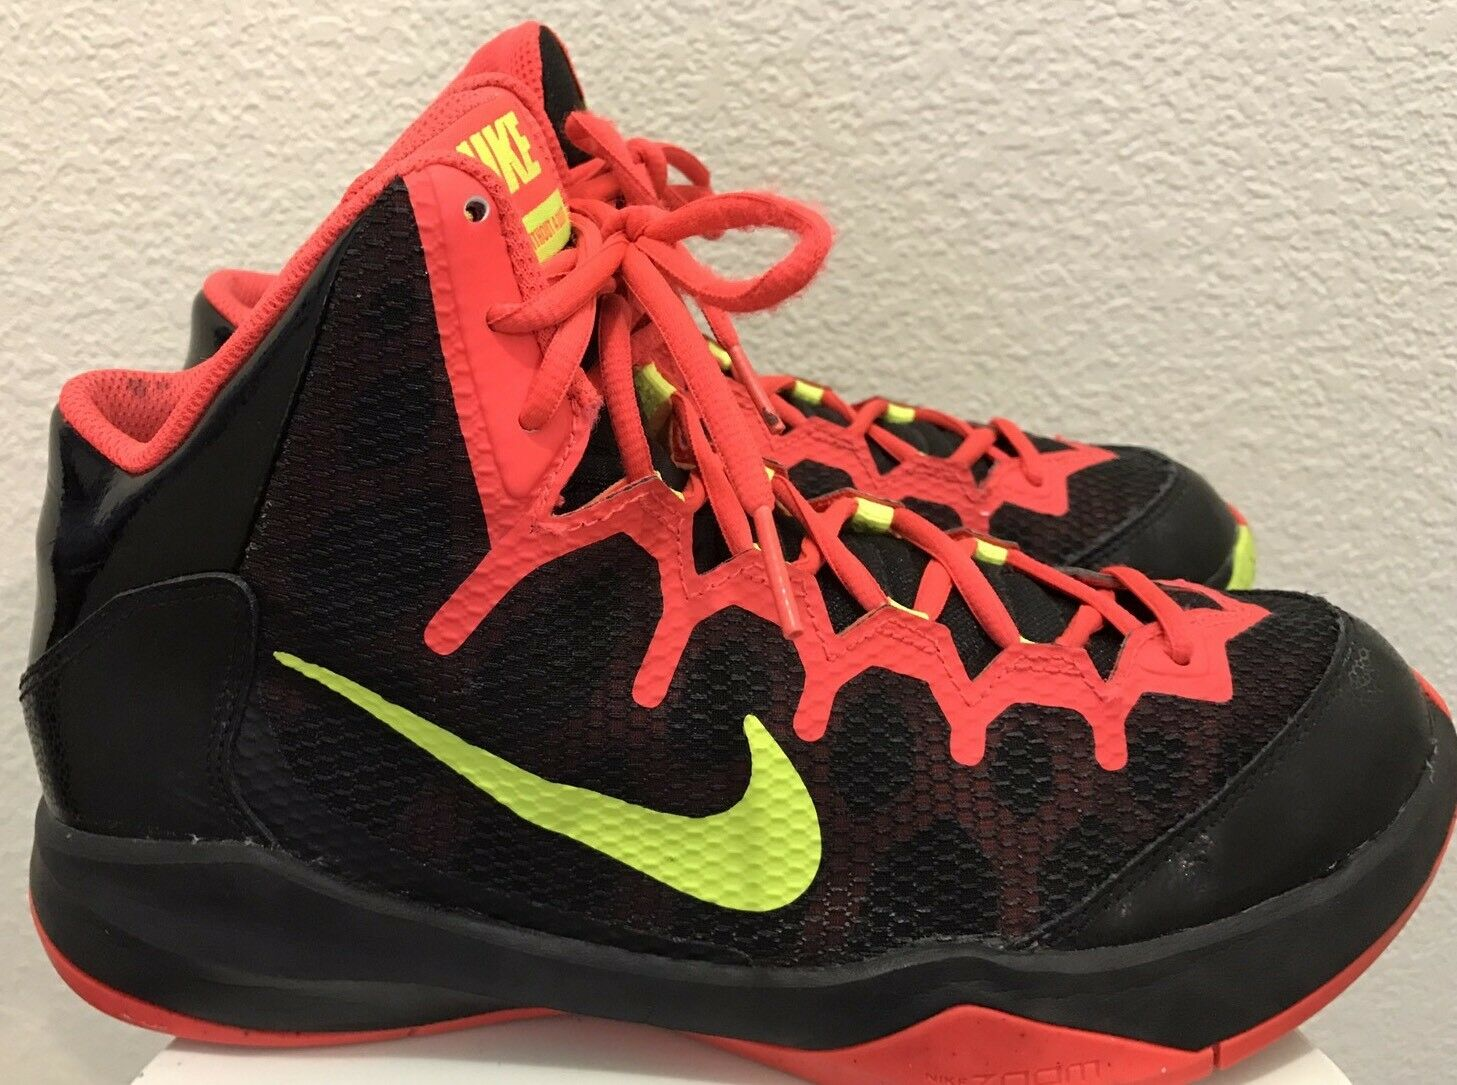 Nike HYPER Crimson Zoom Without a Doubt Basketball Shoes Men's Comfortable